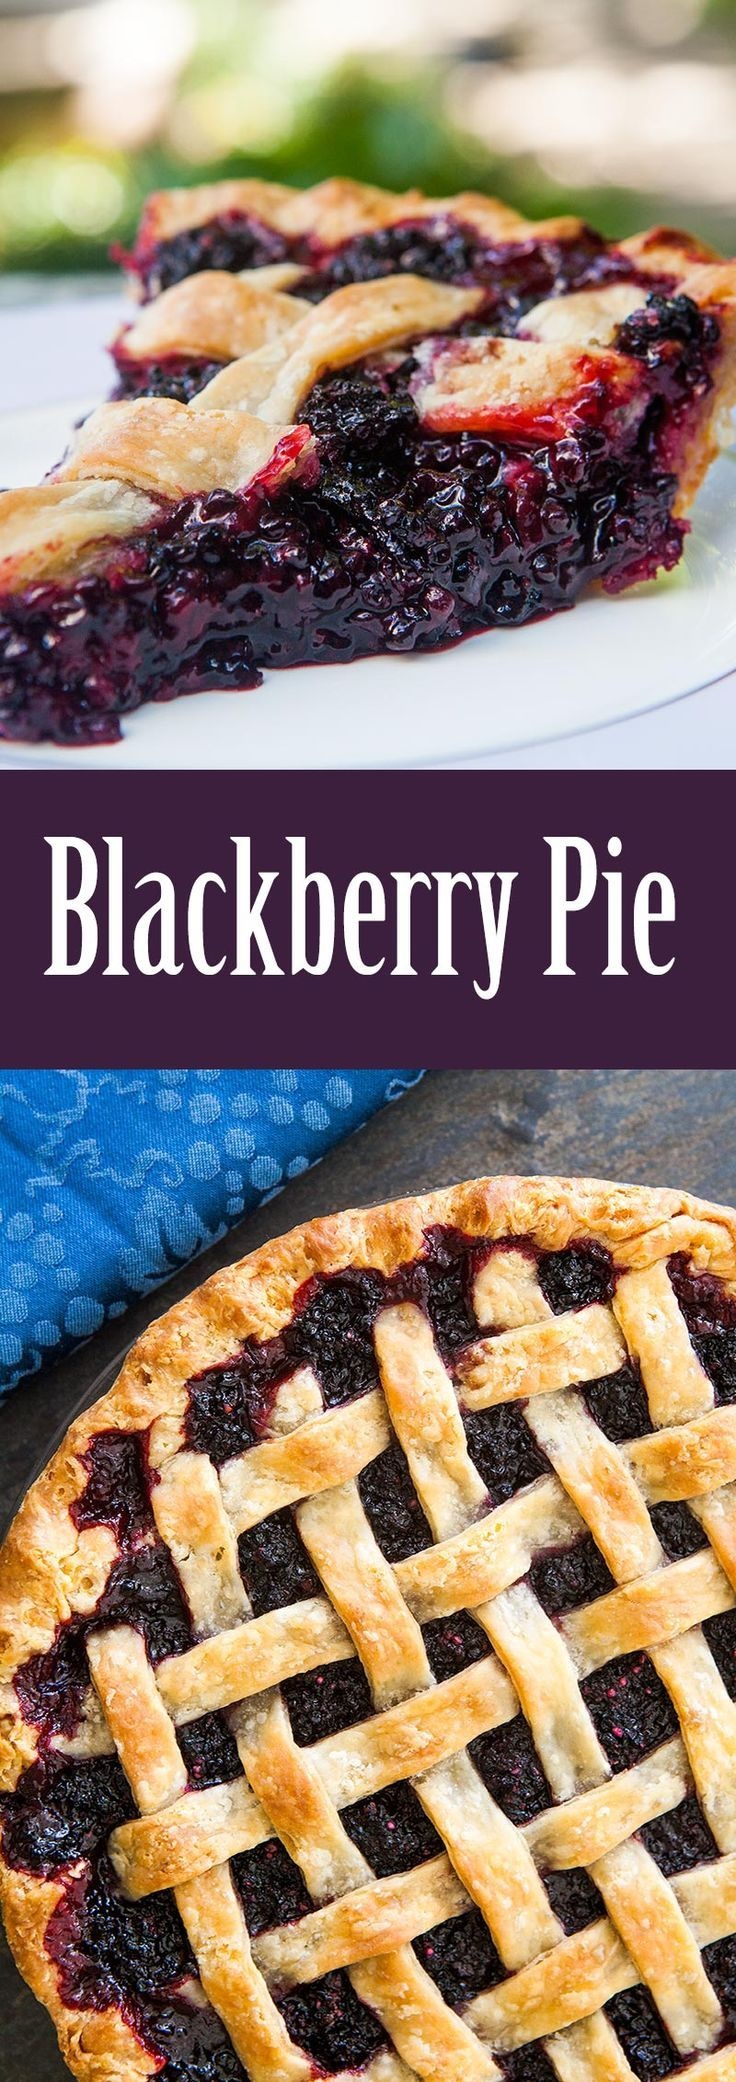 The best blackberry pie EVER. No kidding! All butter crust, loads of blackberries, spiced with a little lemon, cinnamon, and almond extract. Yum!